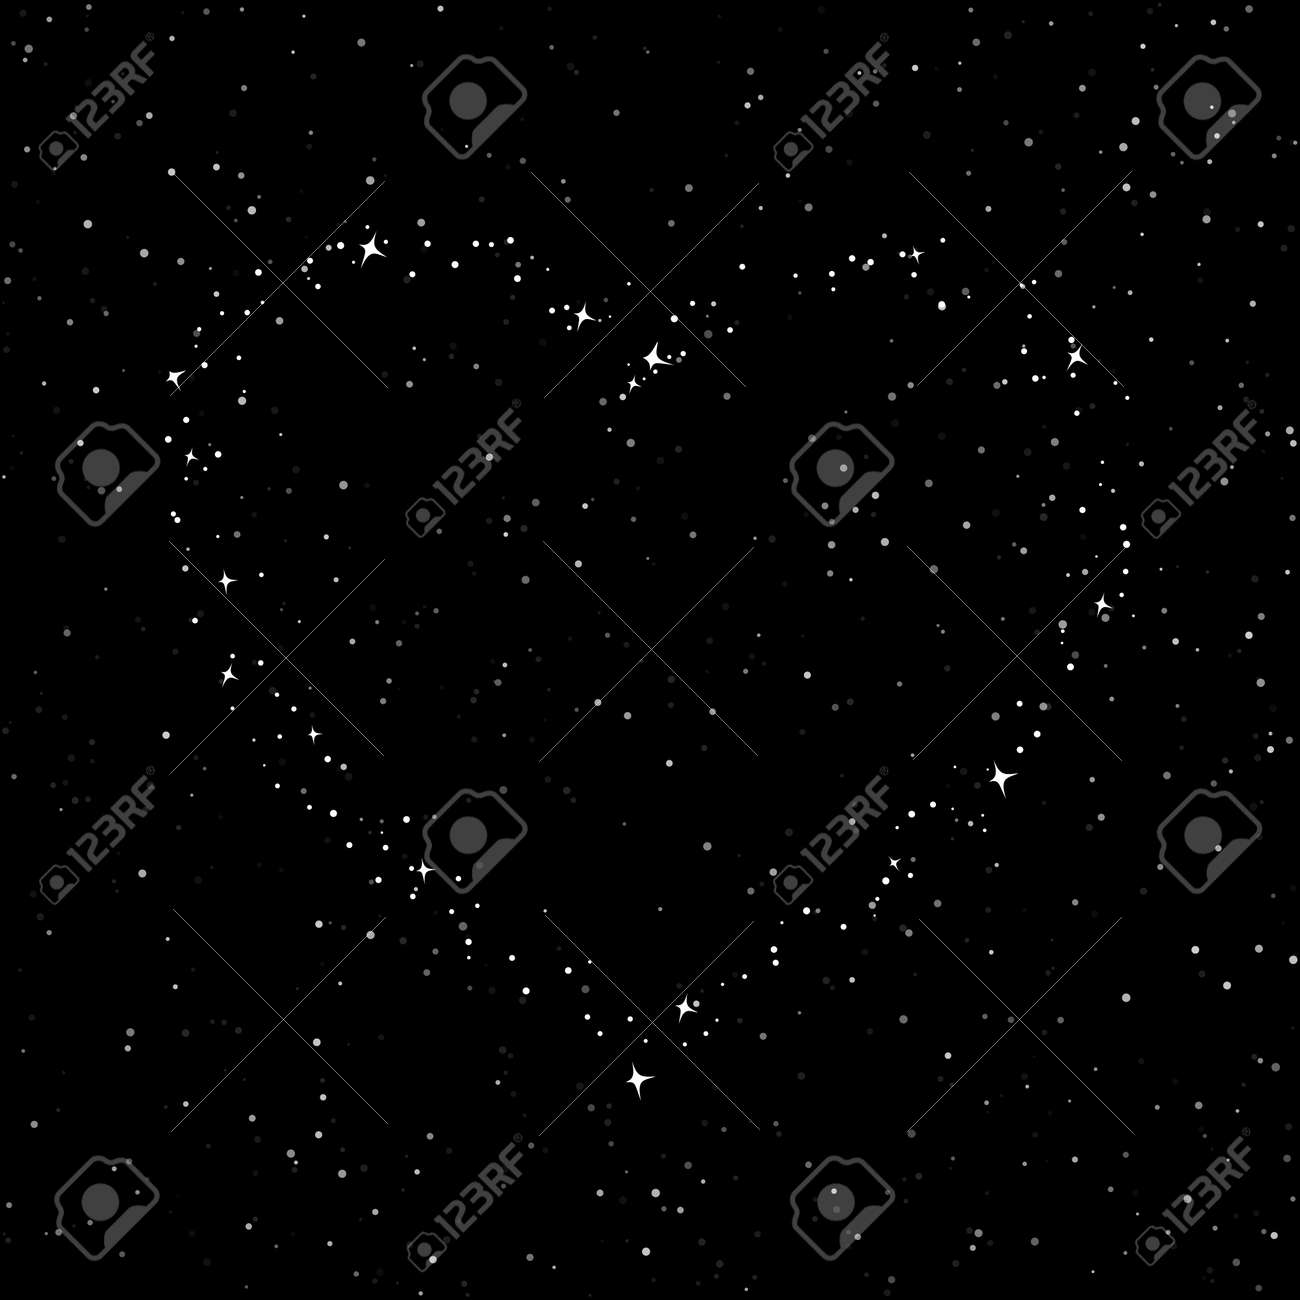 The Heart of the Stars in the Sky, Night Sky with Stars for Valentine, Starry Night Sky, Happy Valentines Day , Vector Illustration - 50249395